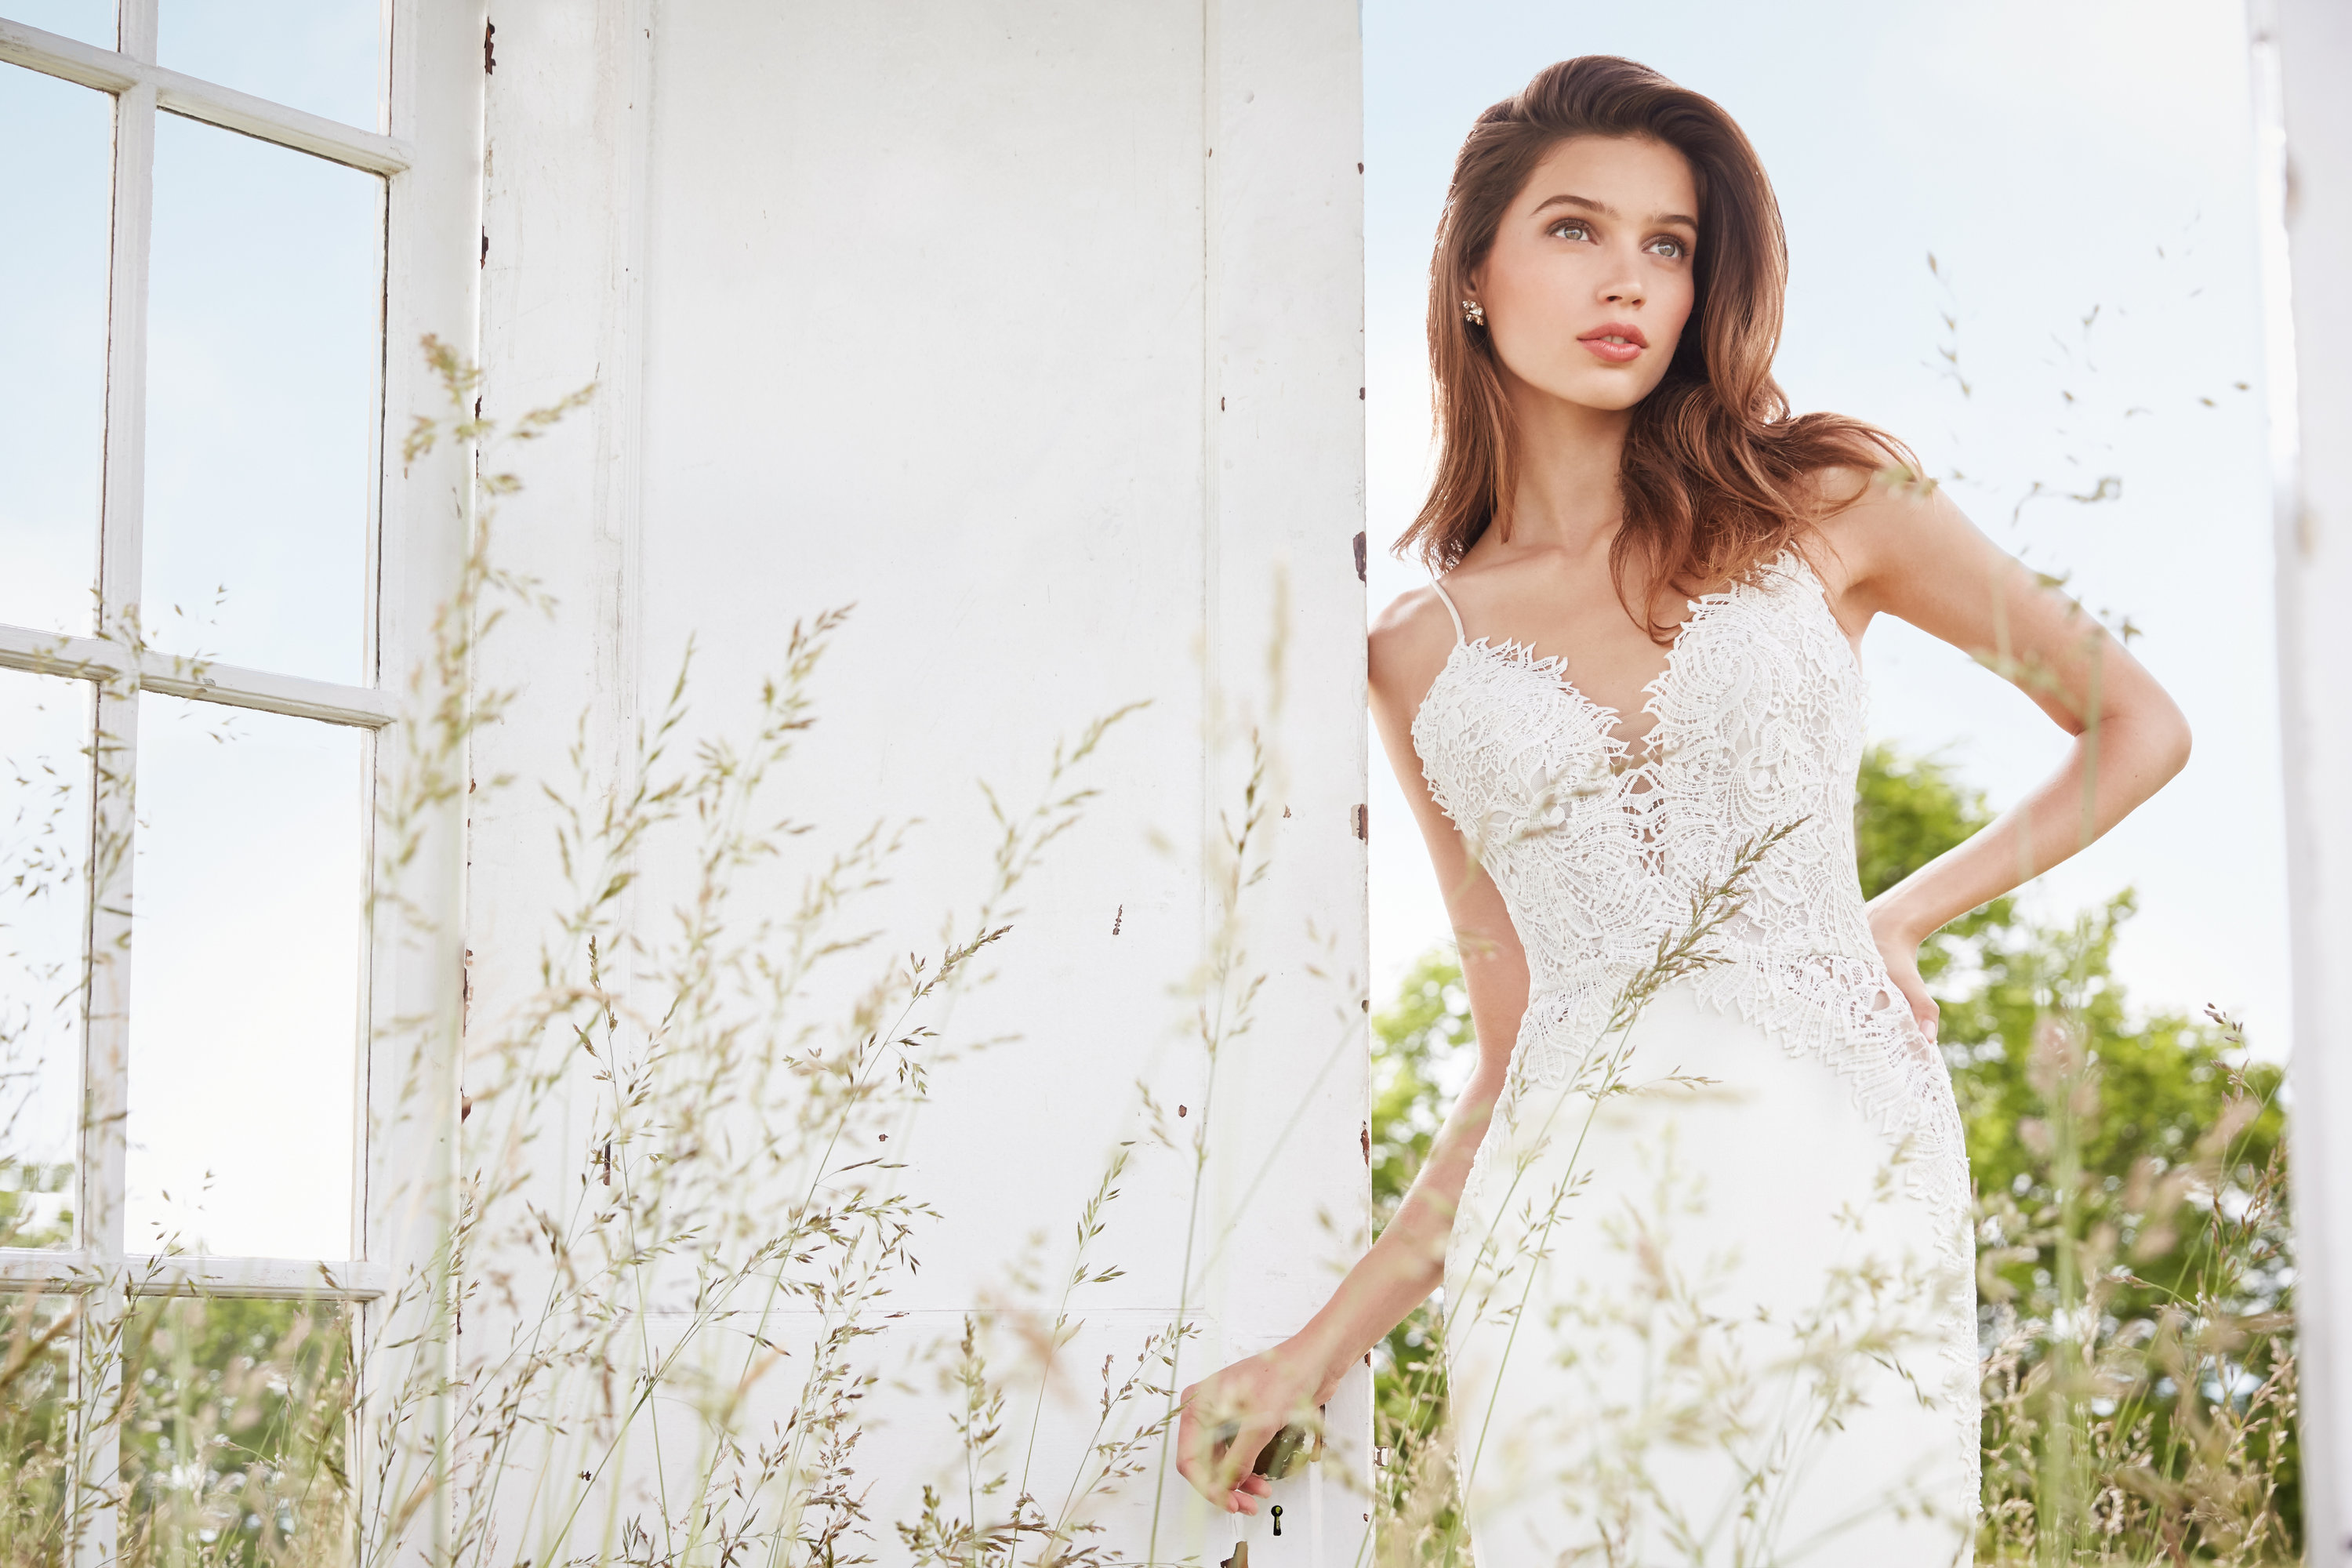 a0c4f3002346 Bridal Gowns and Wedding Dresses by JLM Couture - Style 2762